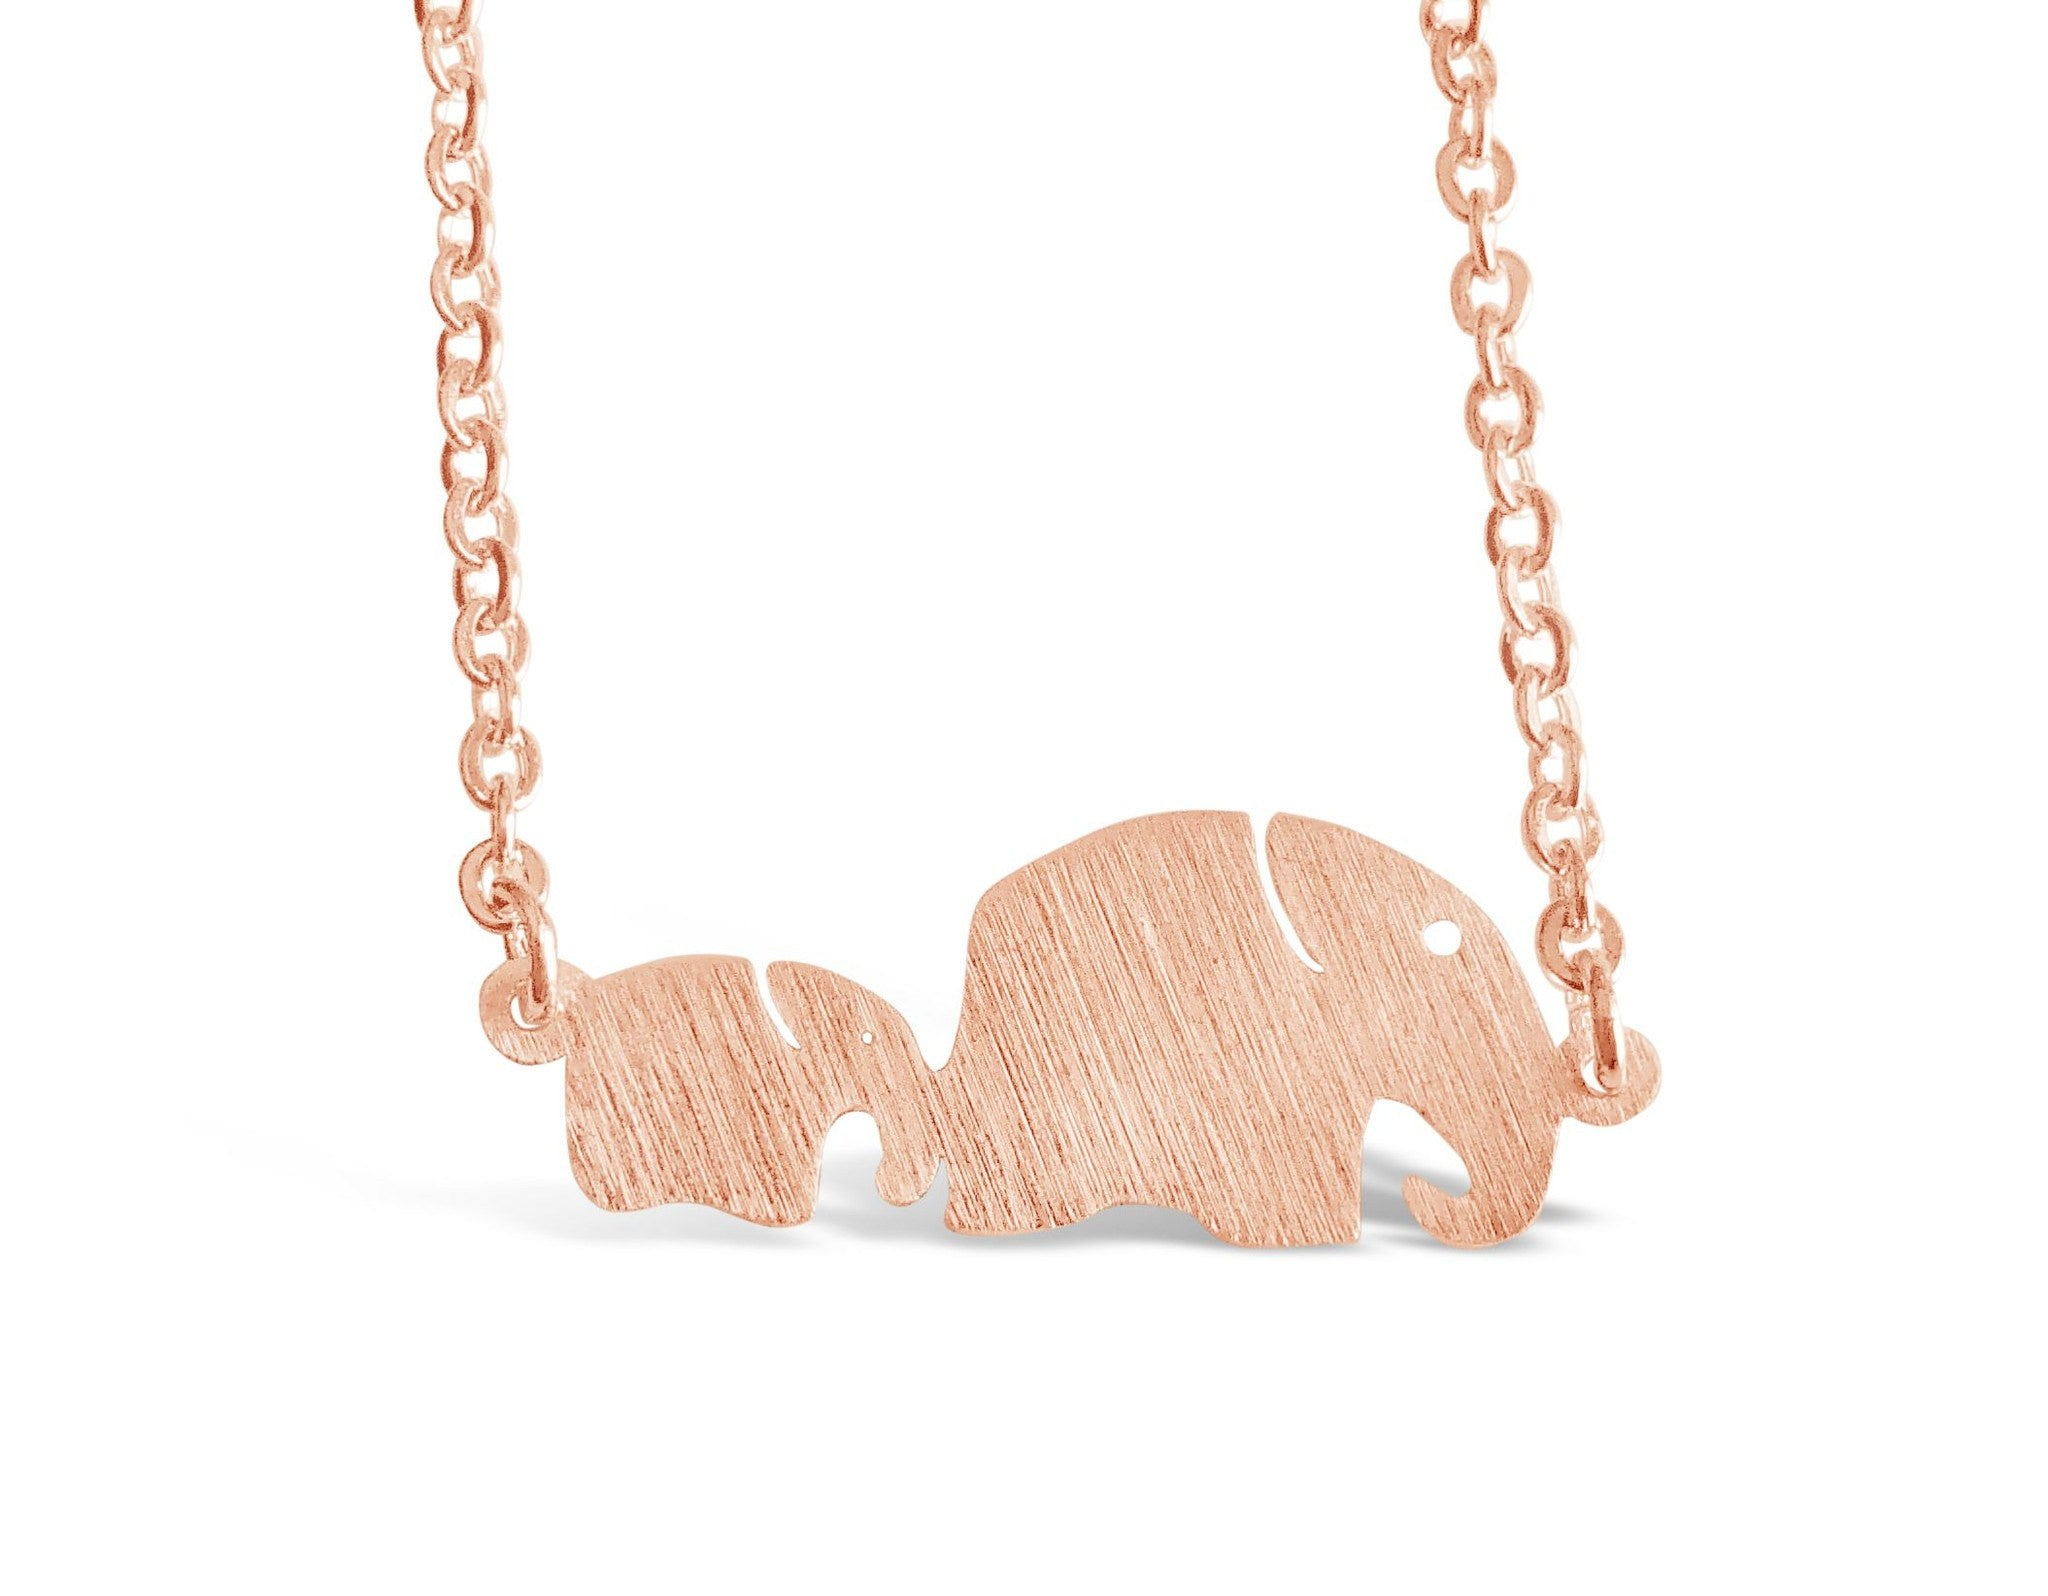 Dainty mom and baby elephant animal necklace rosa vila minimalist mom and baby elephant animal necklace rosa vila aloadofball Image collections